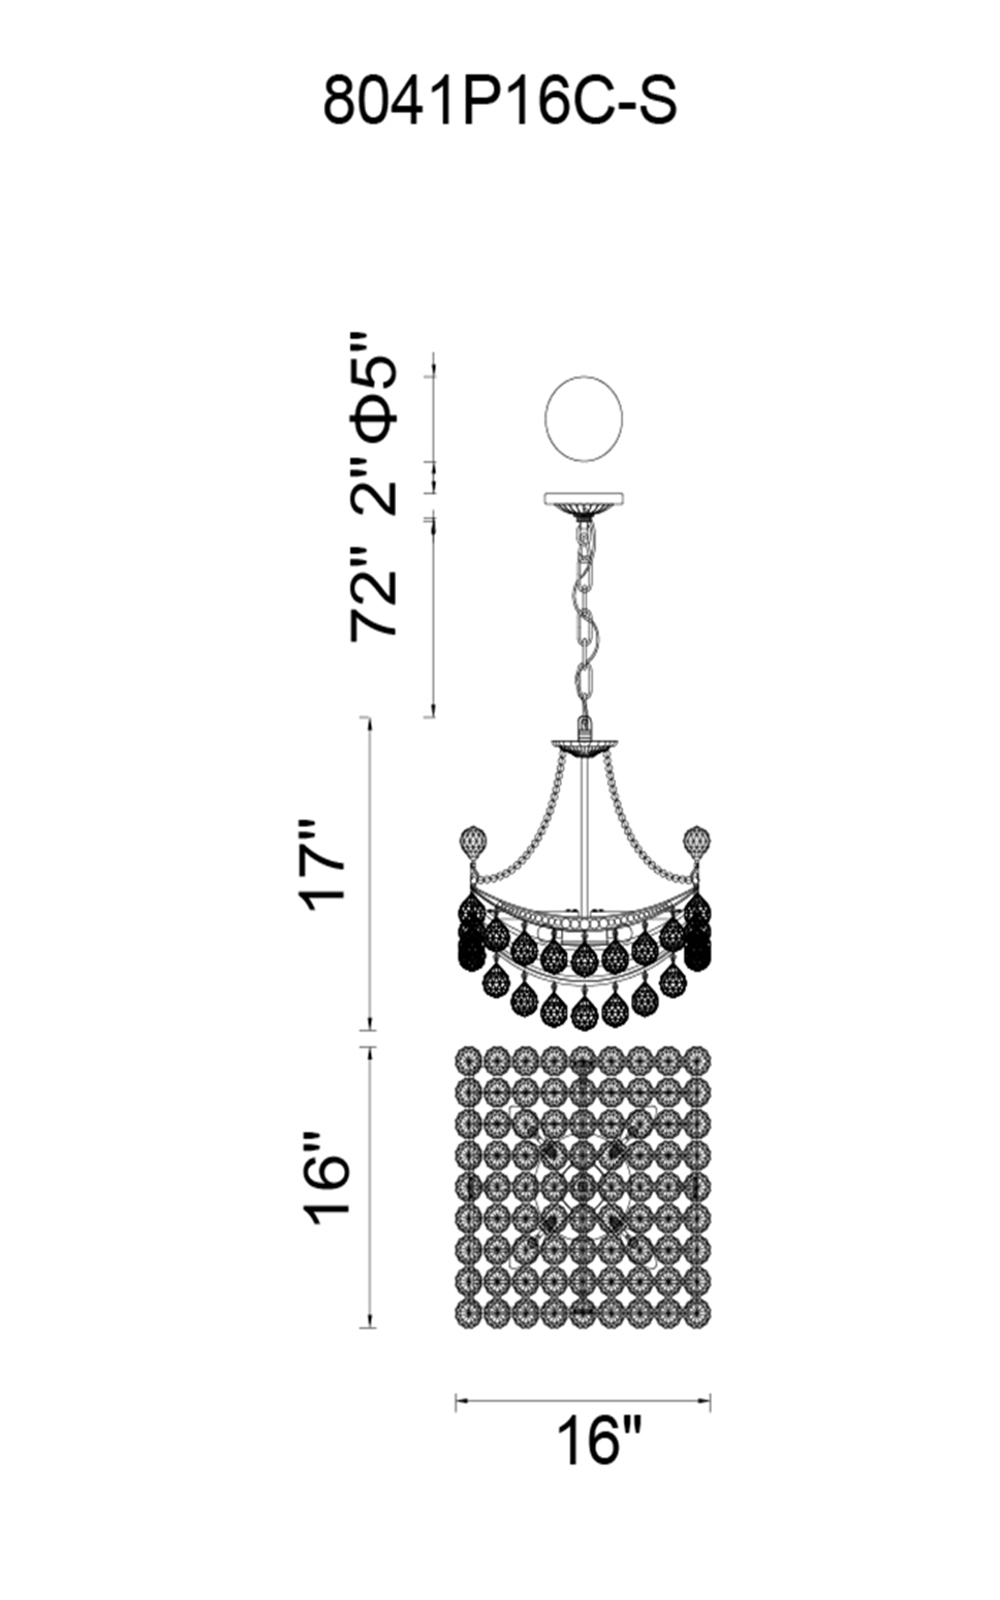 CWI Lighting Jasmine 4 Light Down Chandelier With Chrome Finish Model: 8041P16C-S Line Drawing